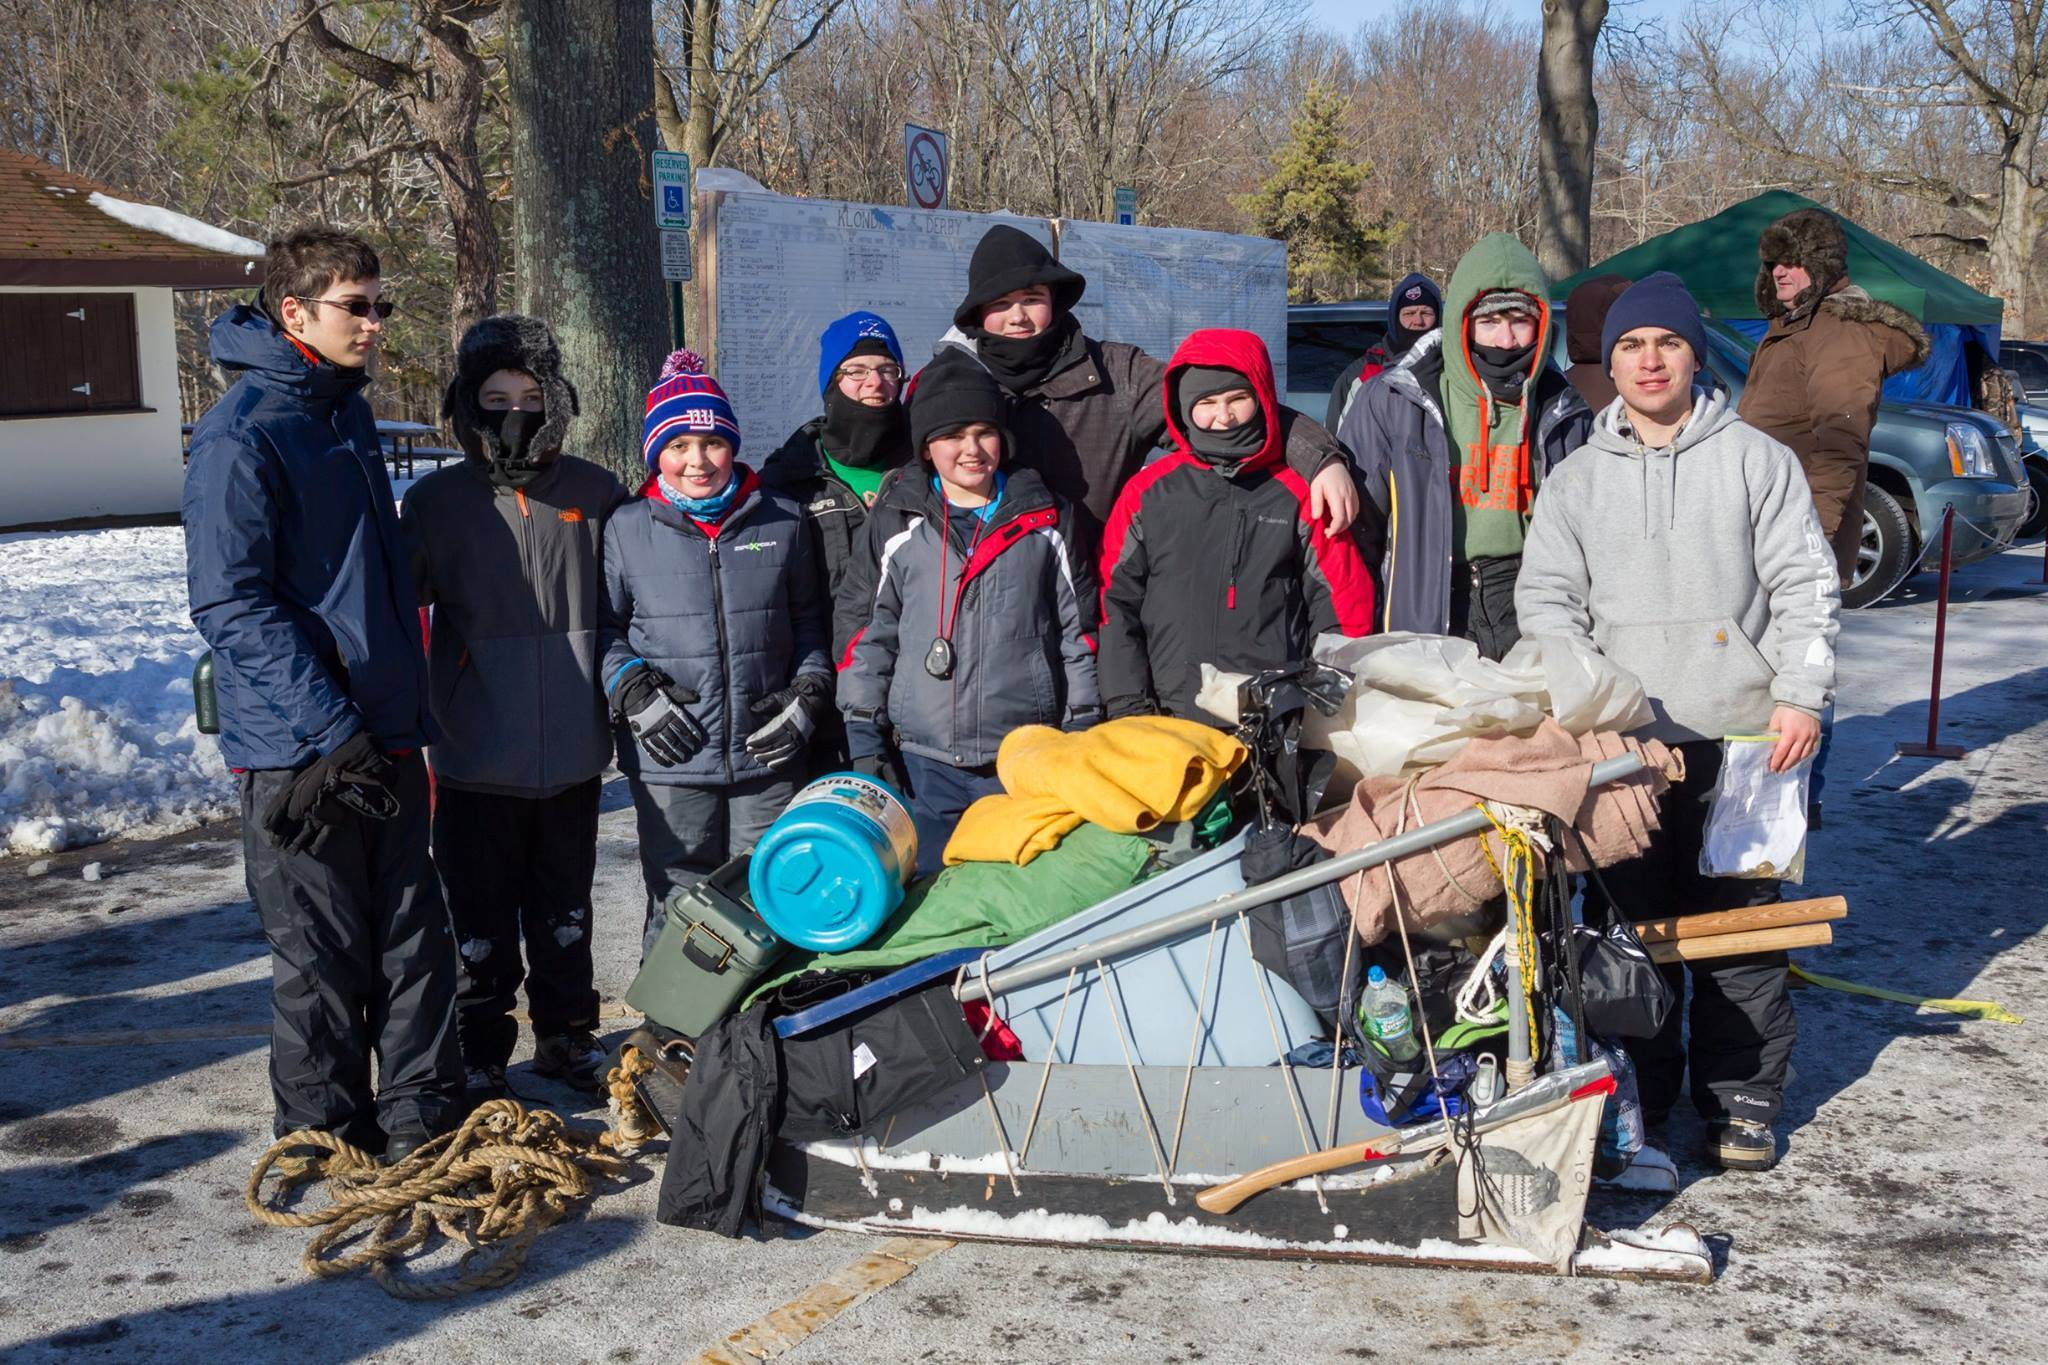 bsa klondike derby held at watchung reservation news